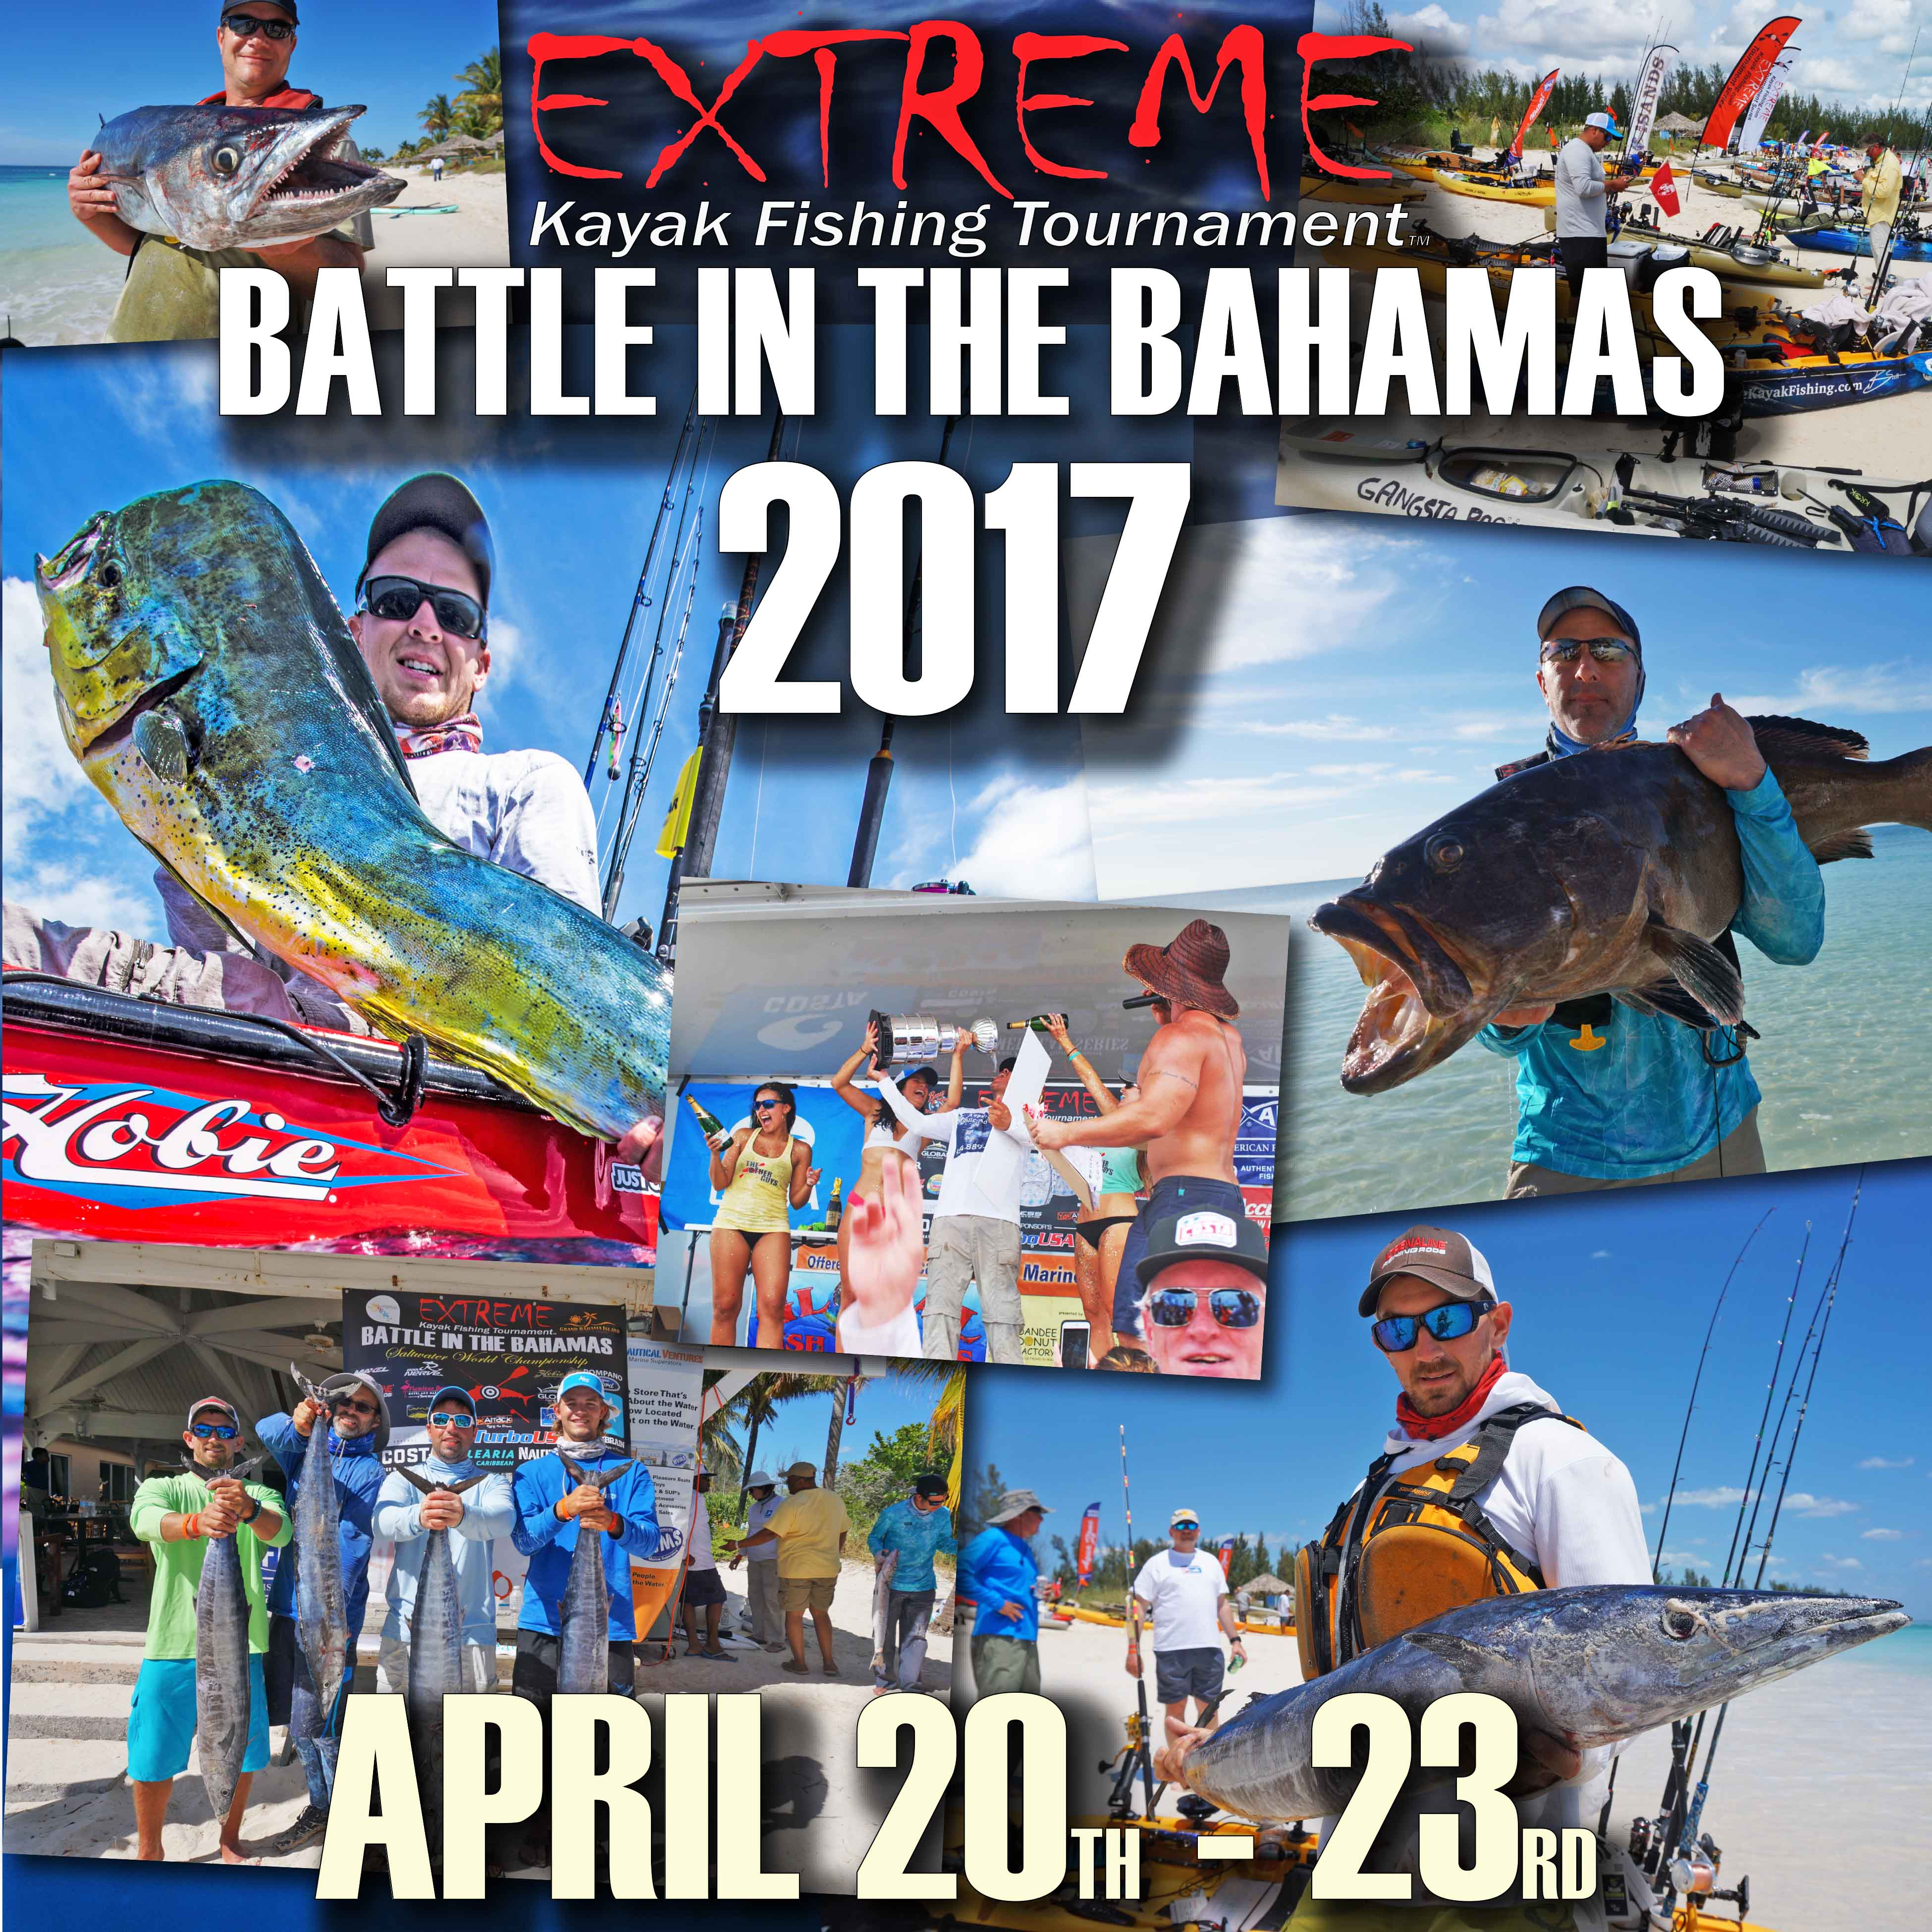 Extreme Kayak Fishing Tournament